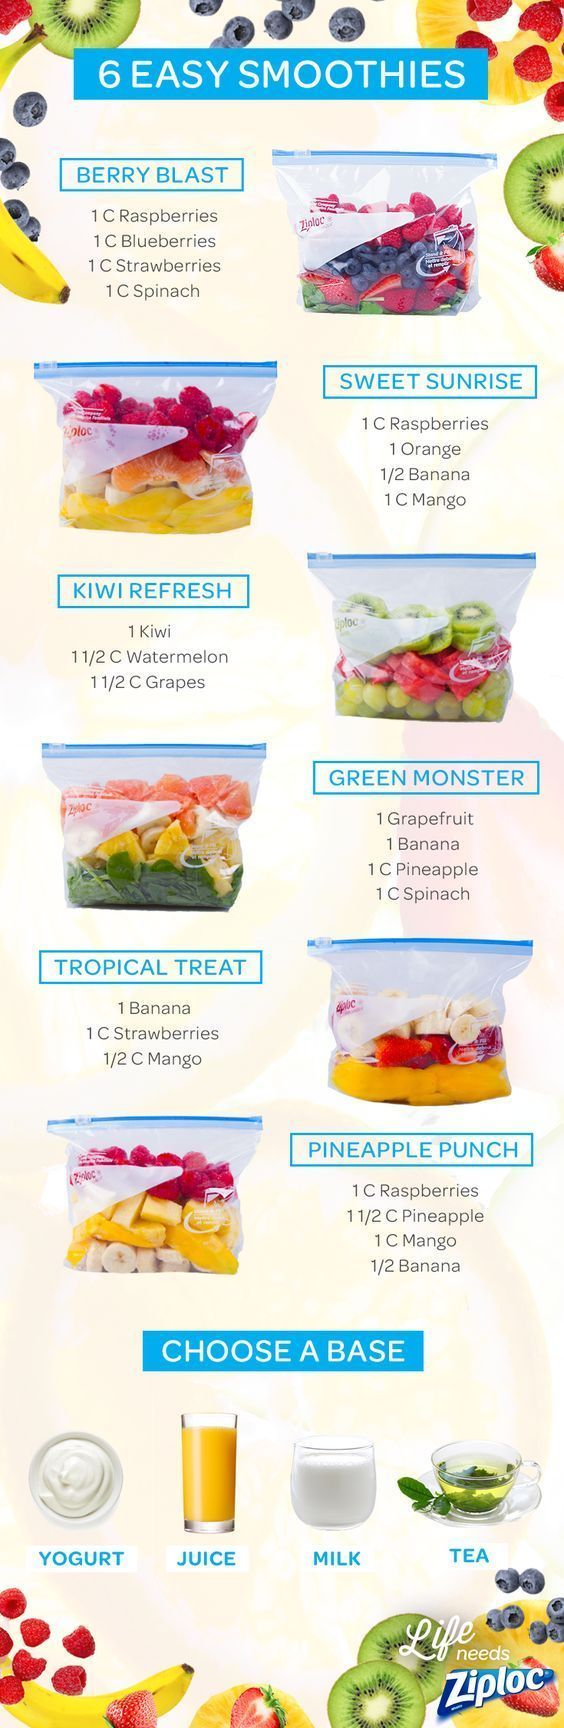 4 Smoothie recipes you can put in the freezer